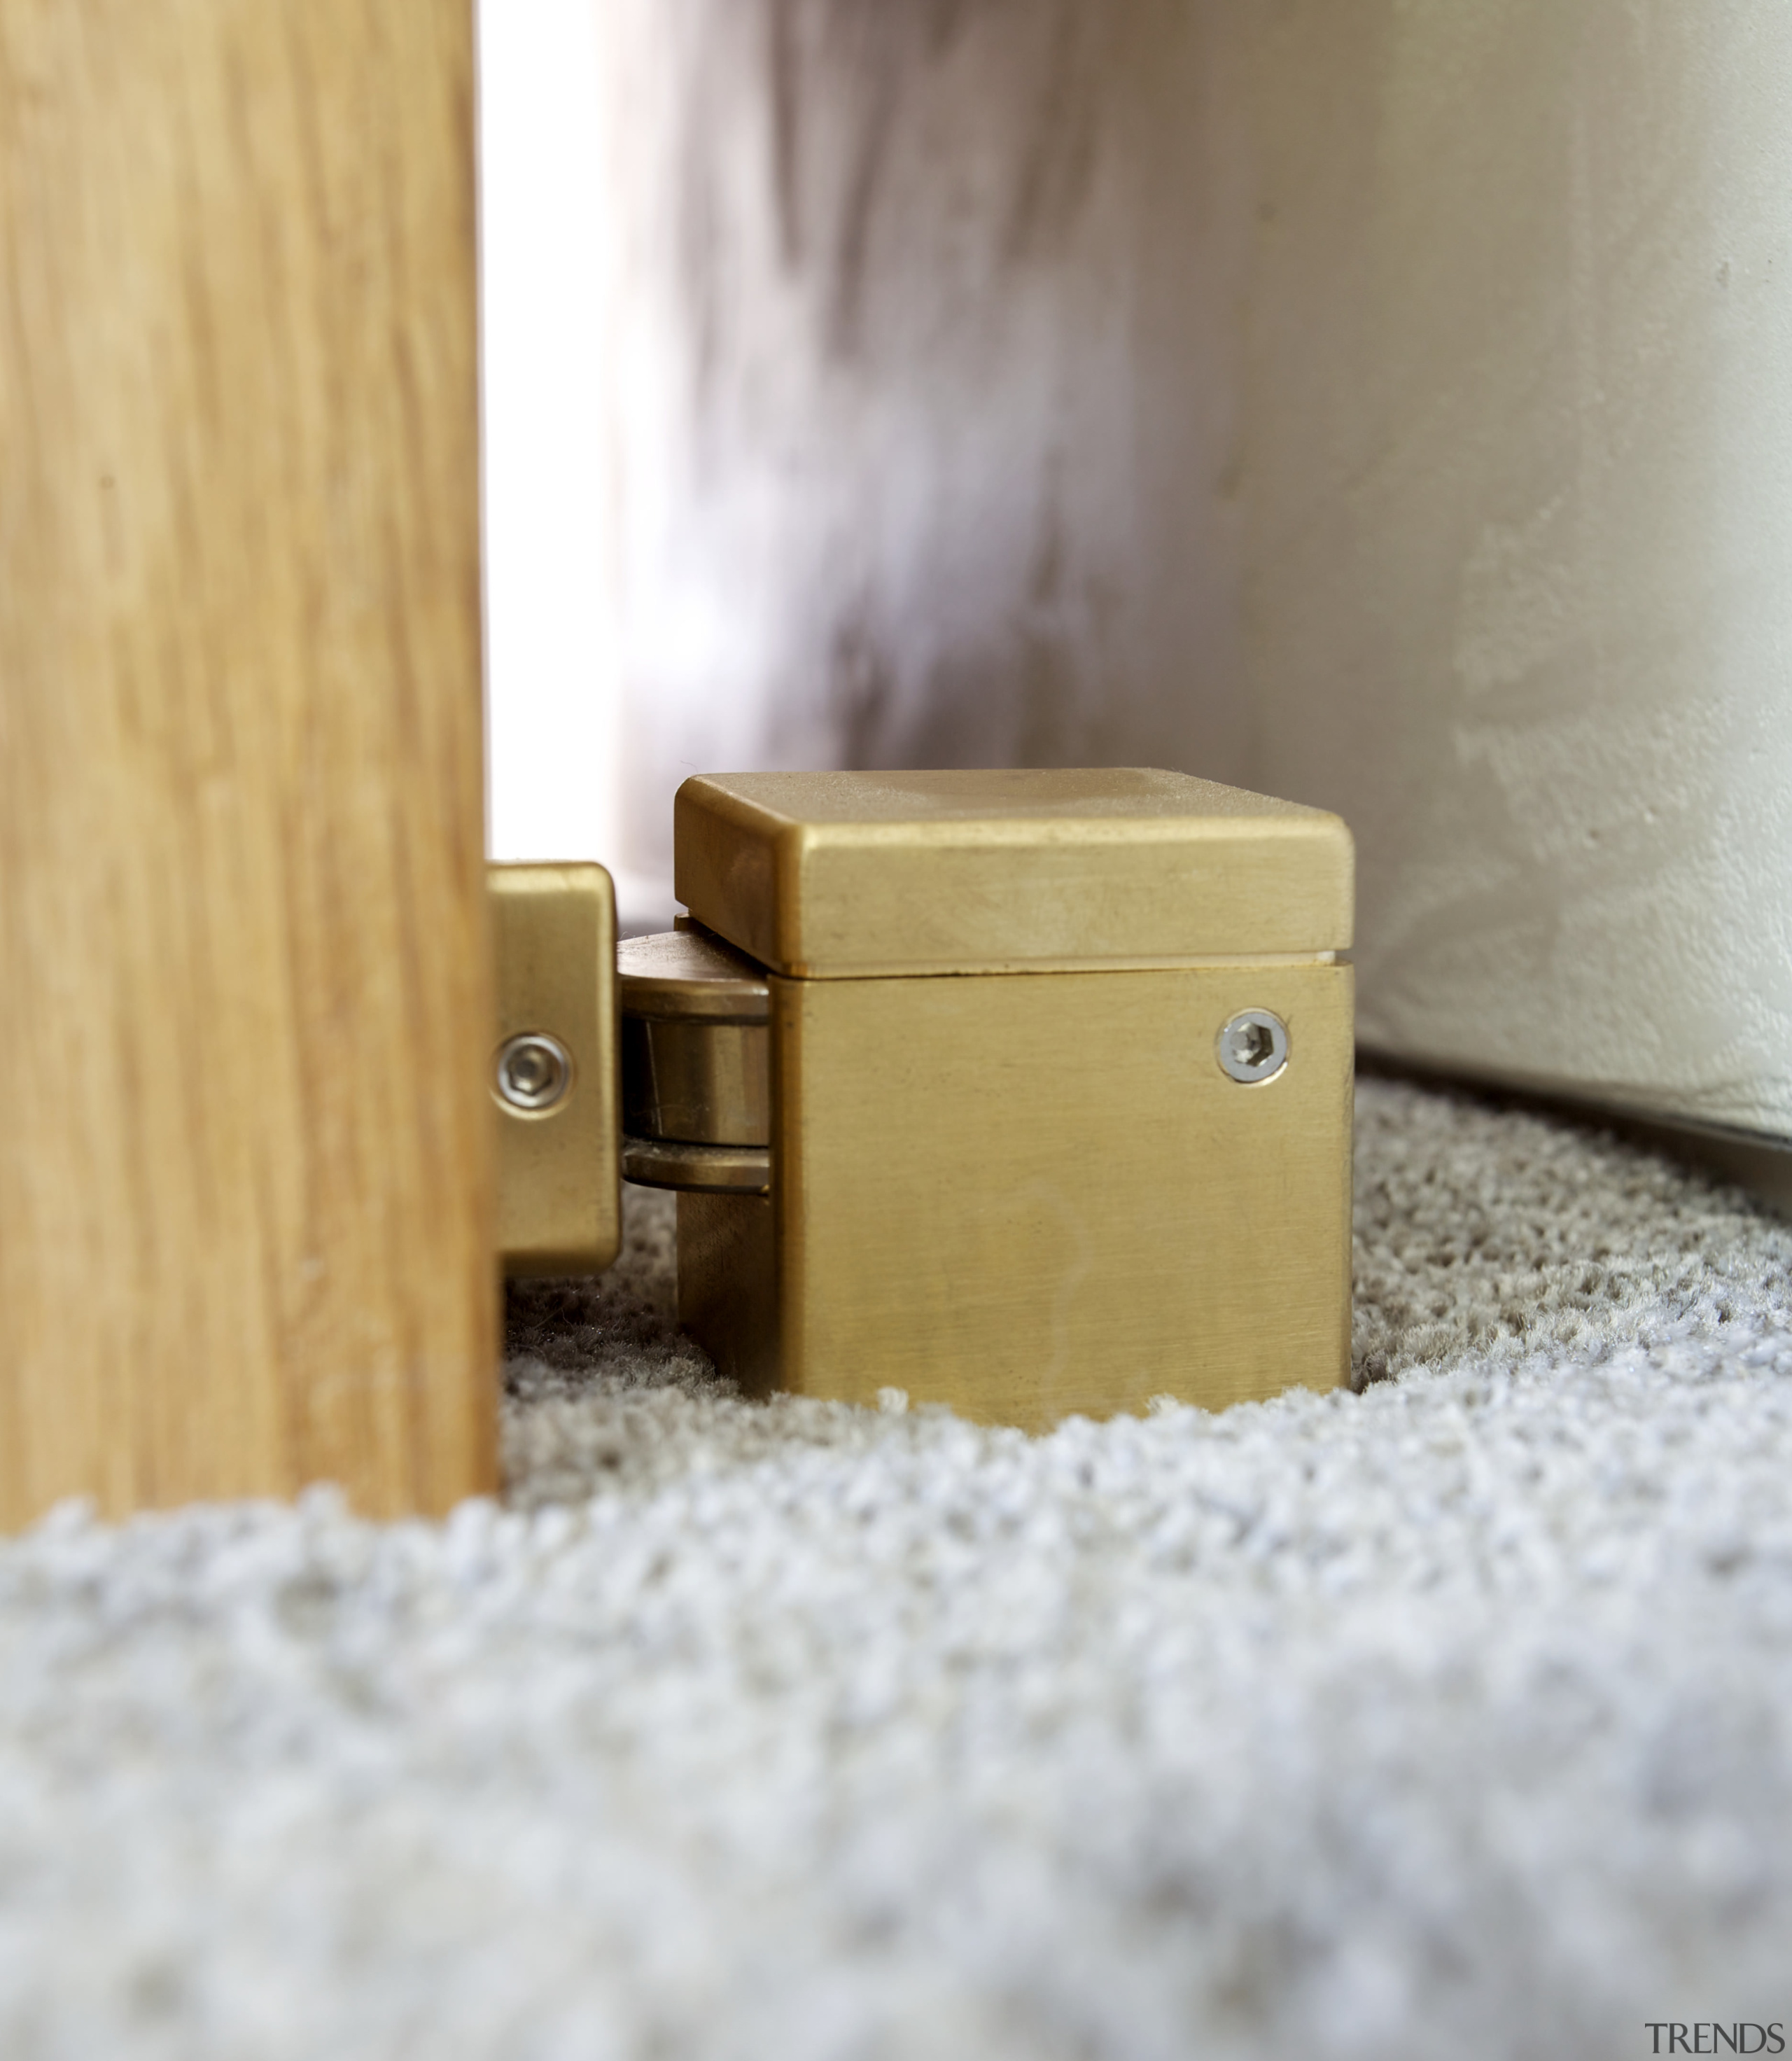 Magnetic brass doorstops by Chant contribute to the lock, product design, wood, gray